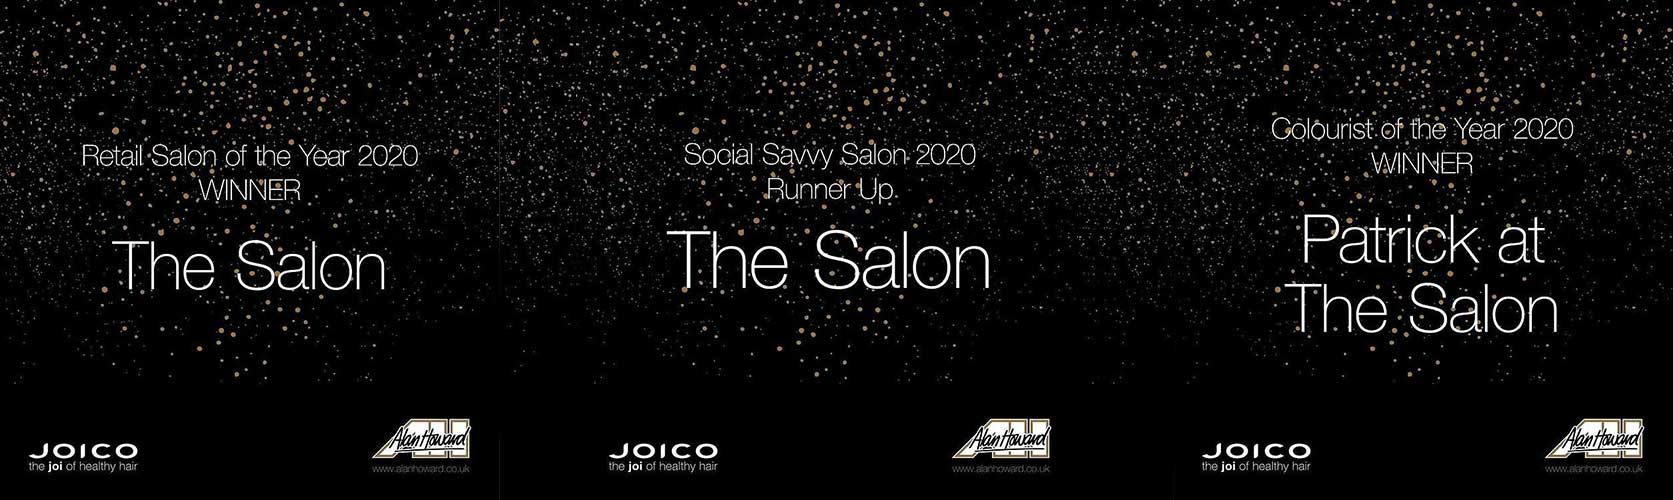 The Salon, Langley Park Win Big At The Joico Conference Awards